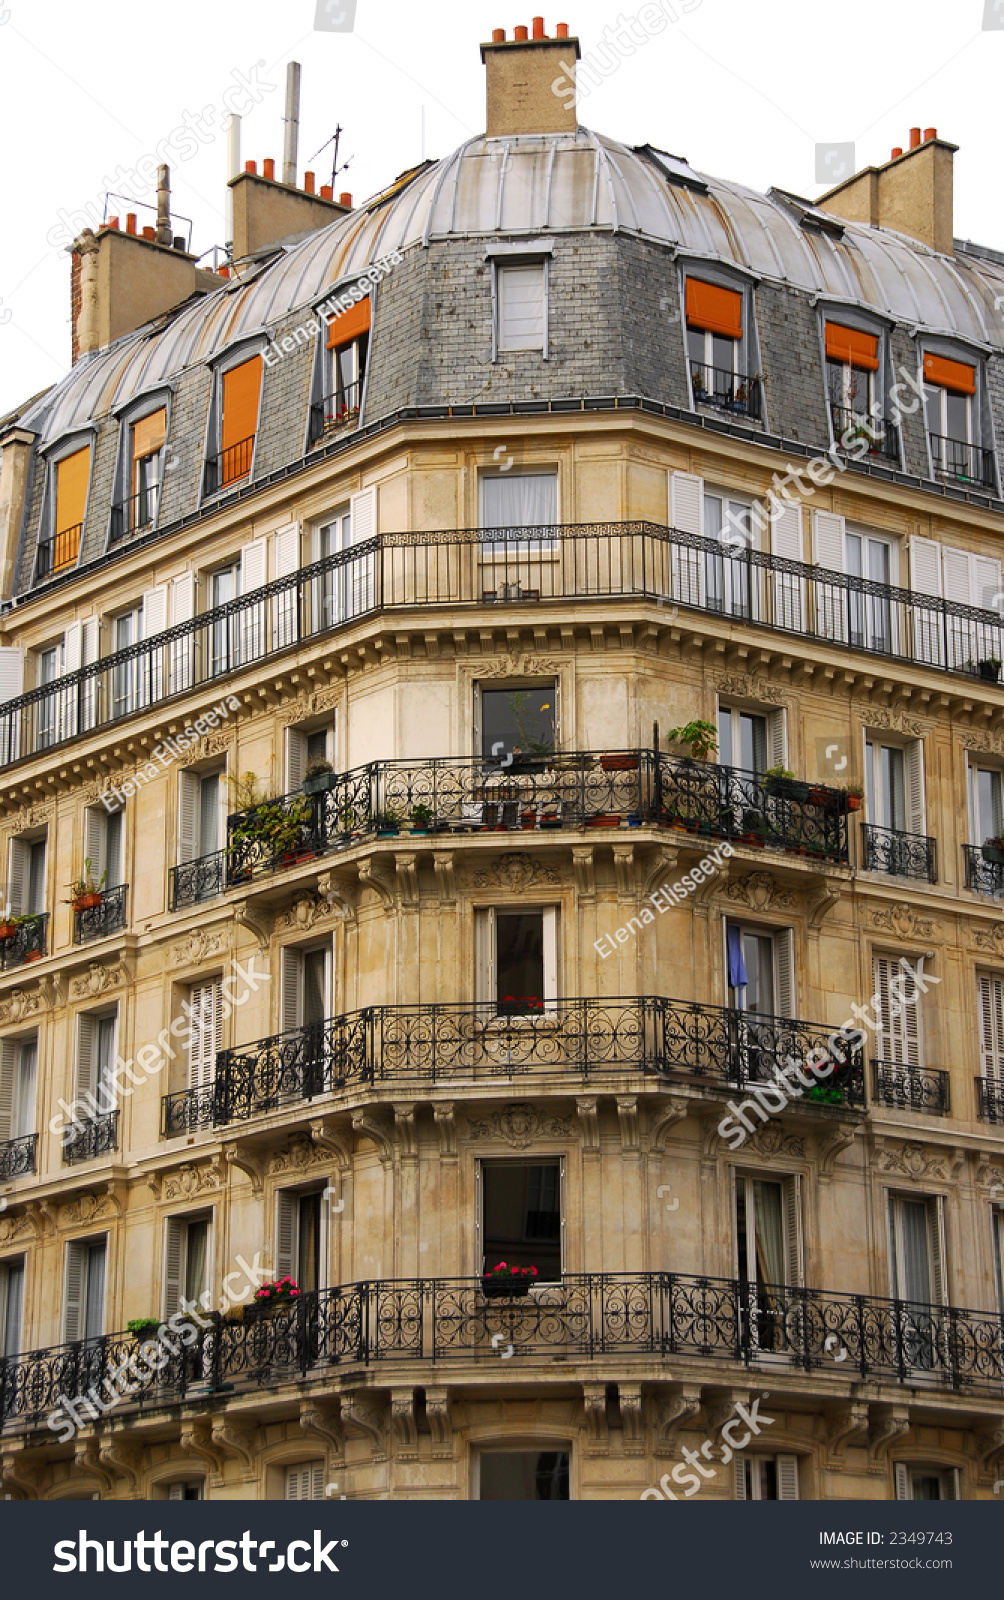 small old apartment building. Old apartment buildings with wrought iron balconies in Paris France Apartment Buildings Wrought Iron Balconies Stock Photo 2349743